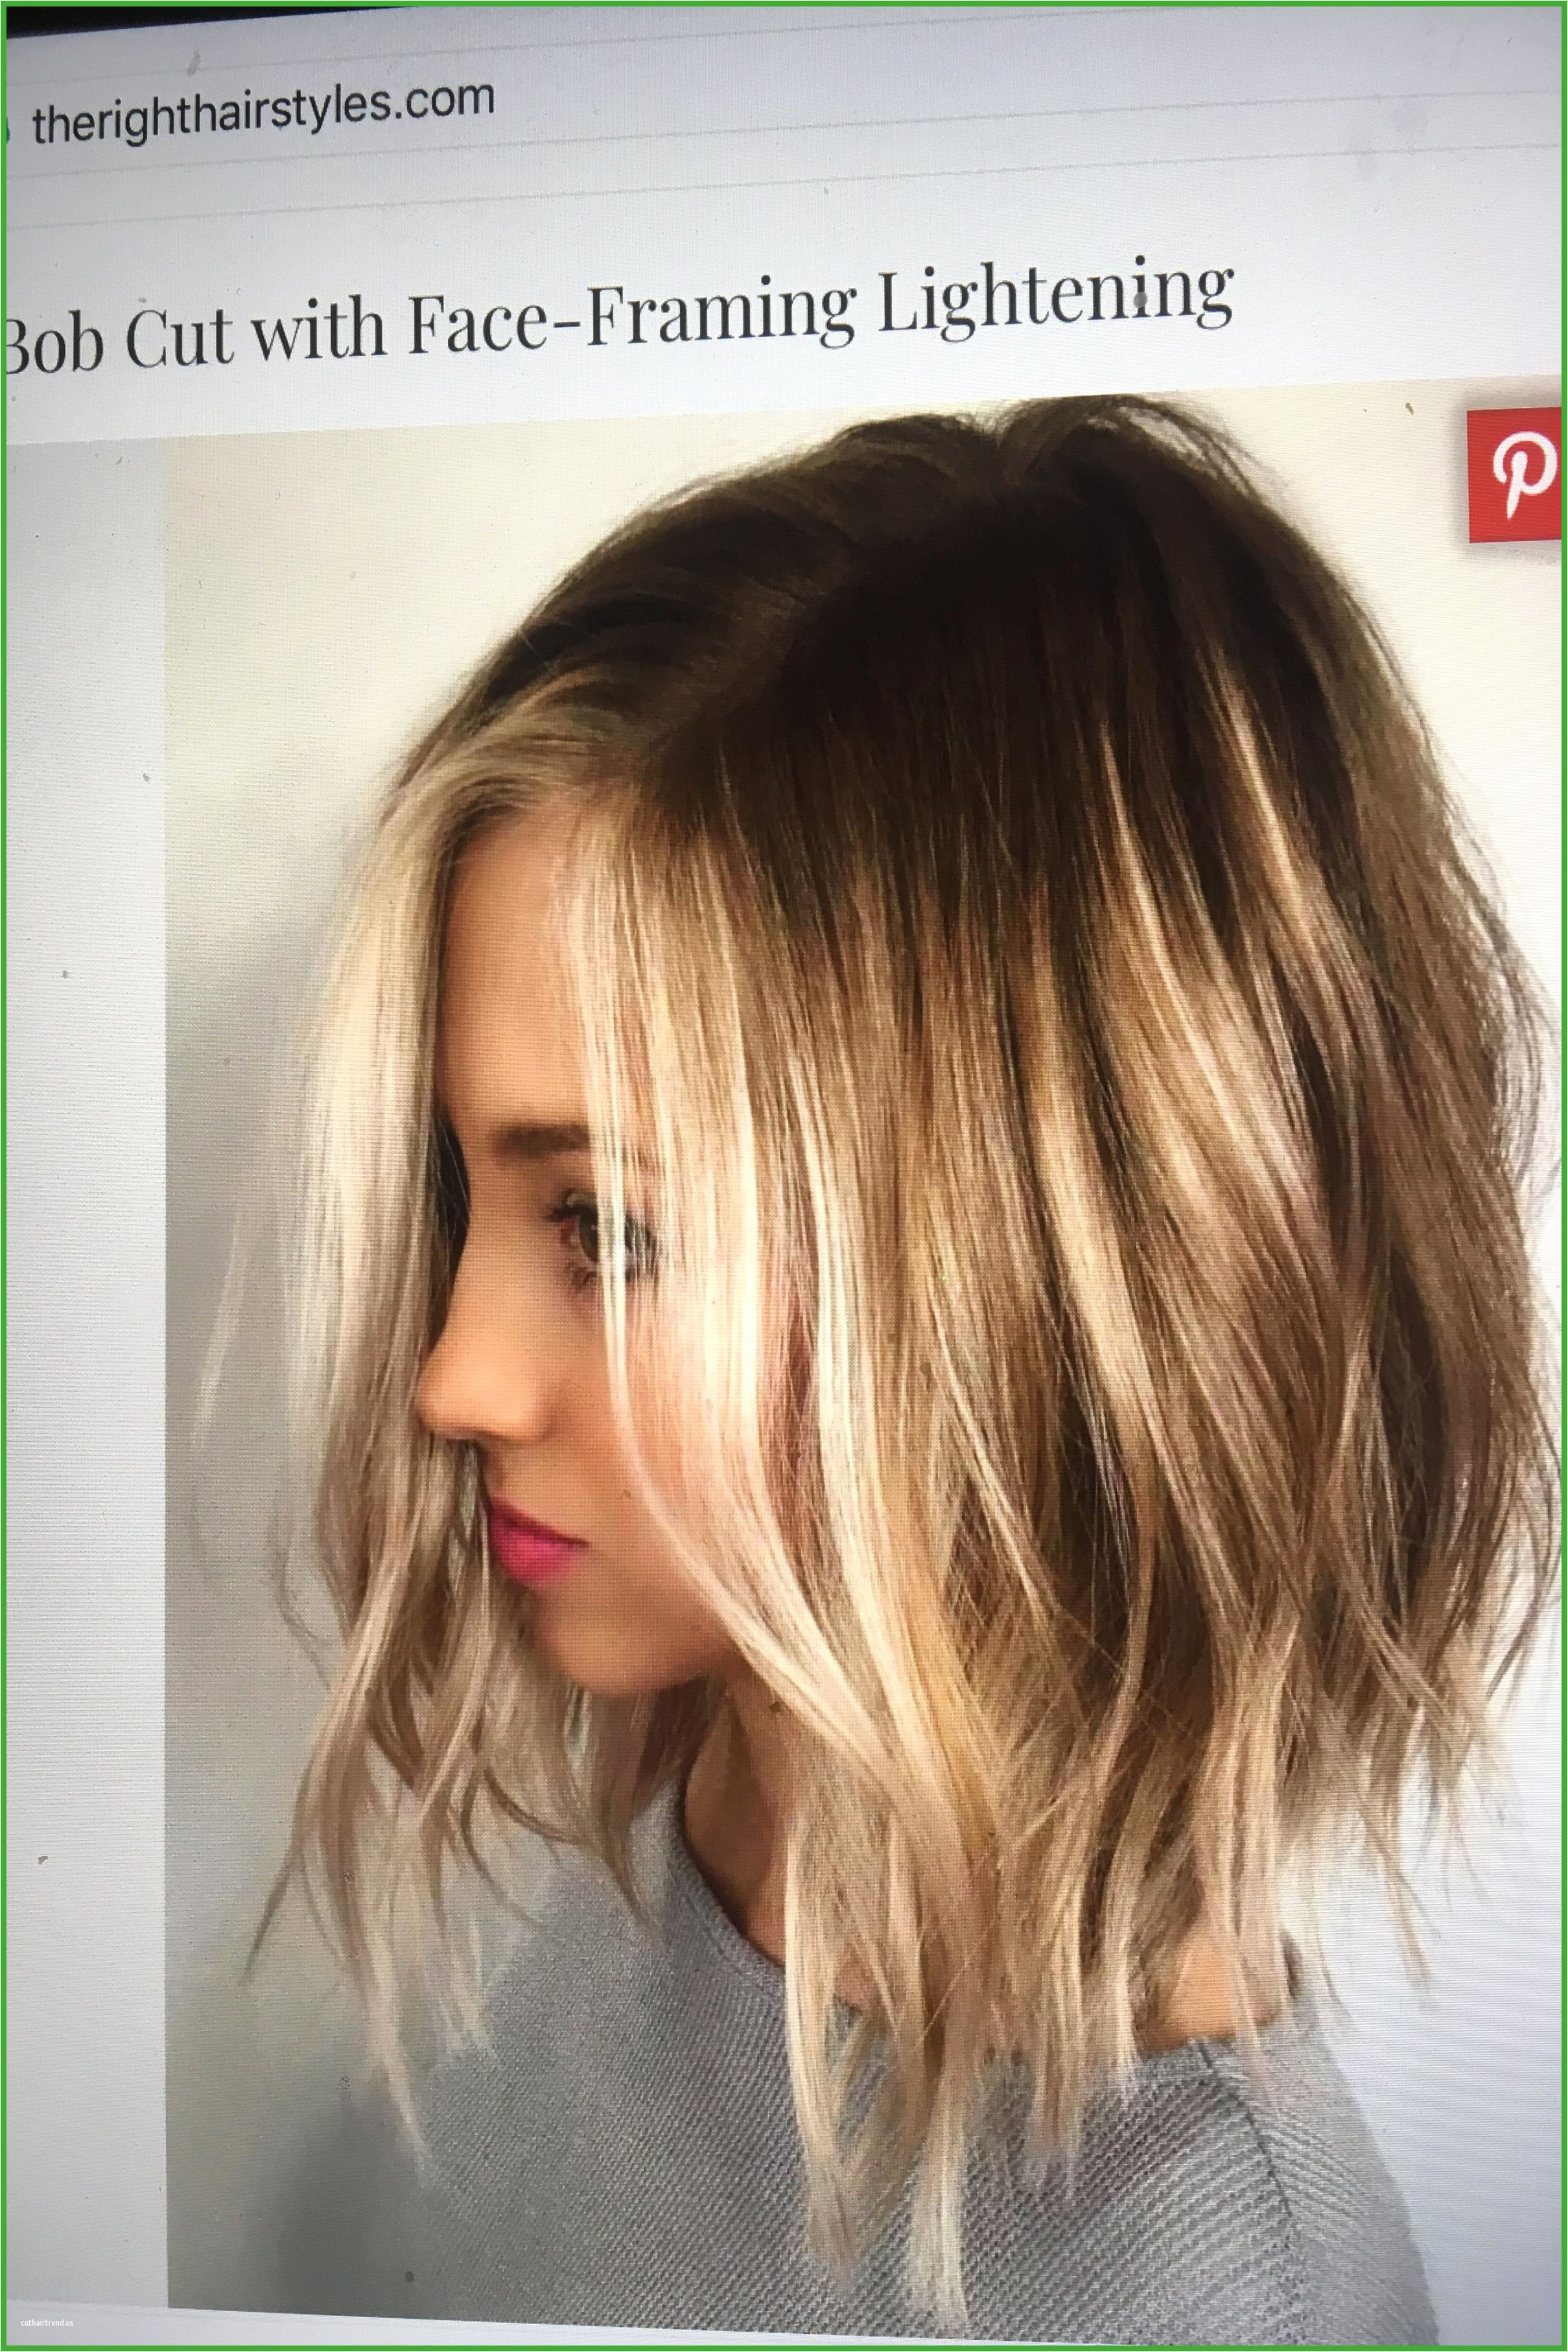 Medium Length Hairstyles Pinterest Lovely Shoulder Length Hair Style Lovely I Pinimg 1200x 0d 60 8a